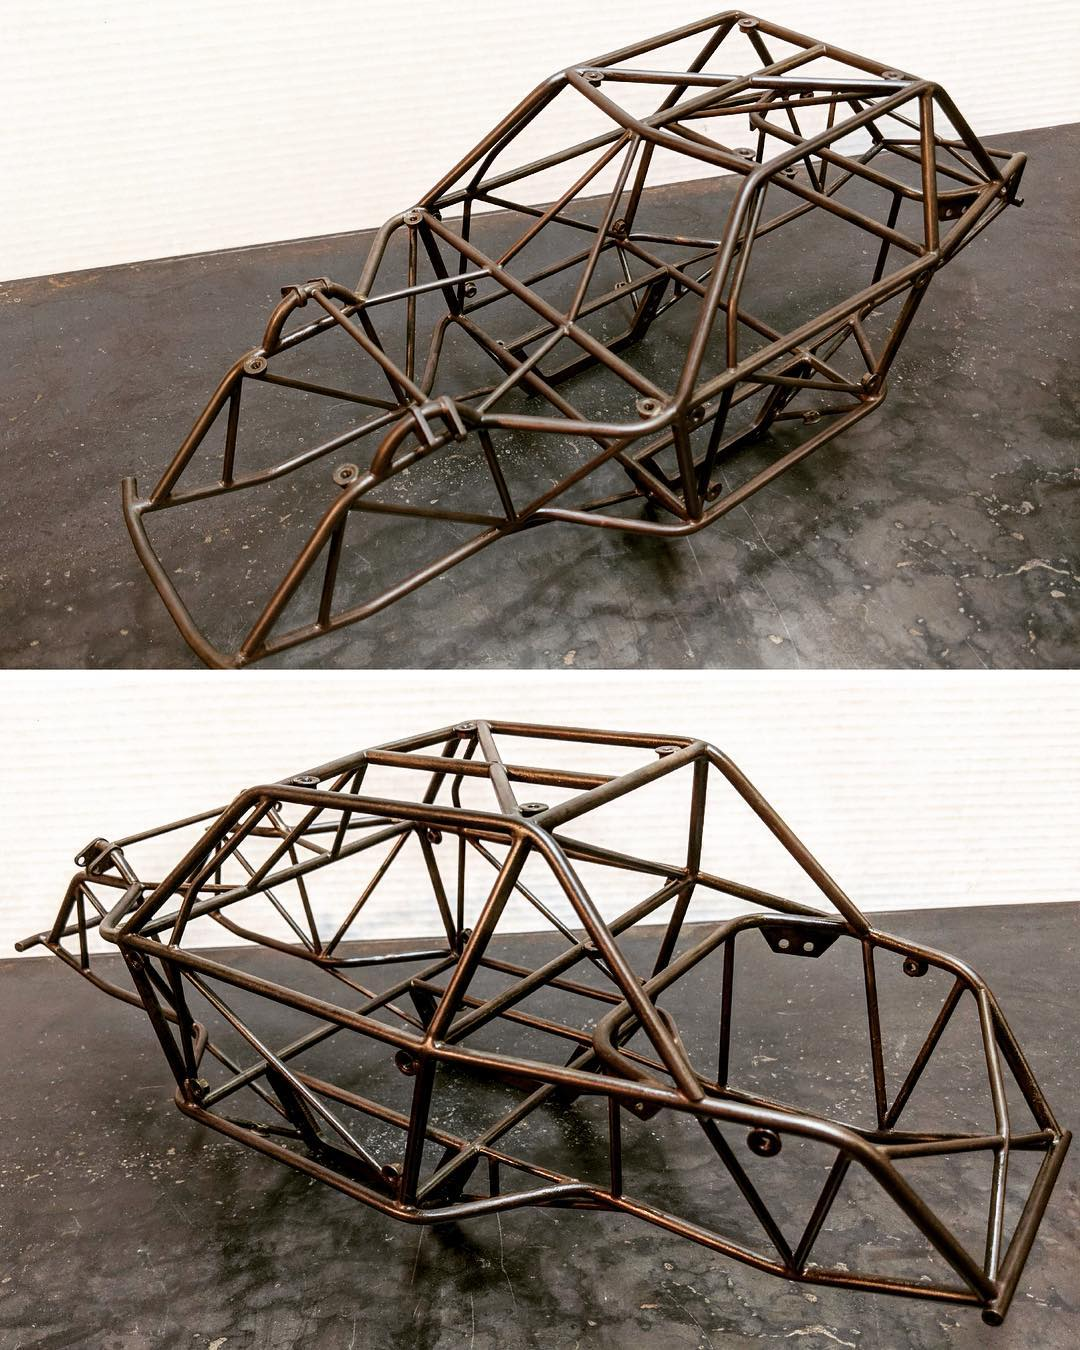 Made from DOM steel tubing and then given a copper coating treatment for an outside the norm look.